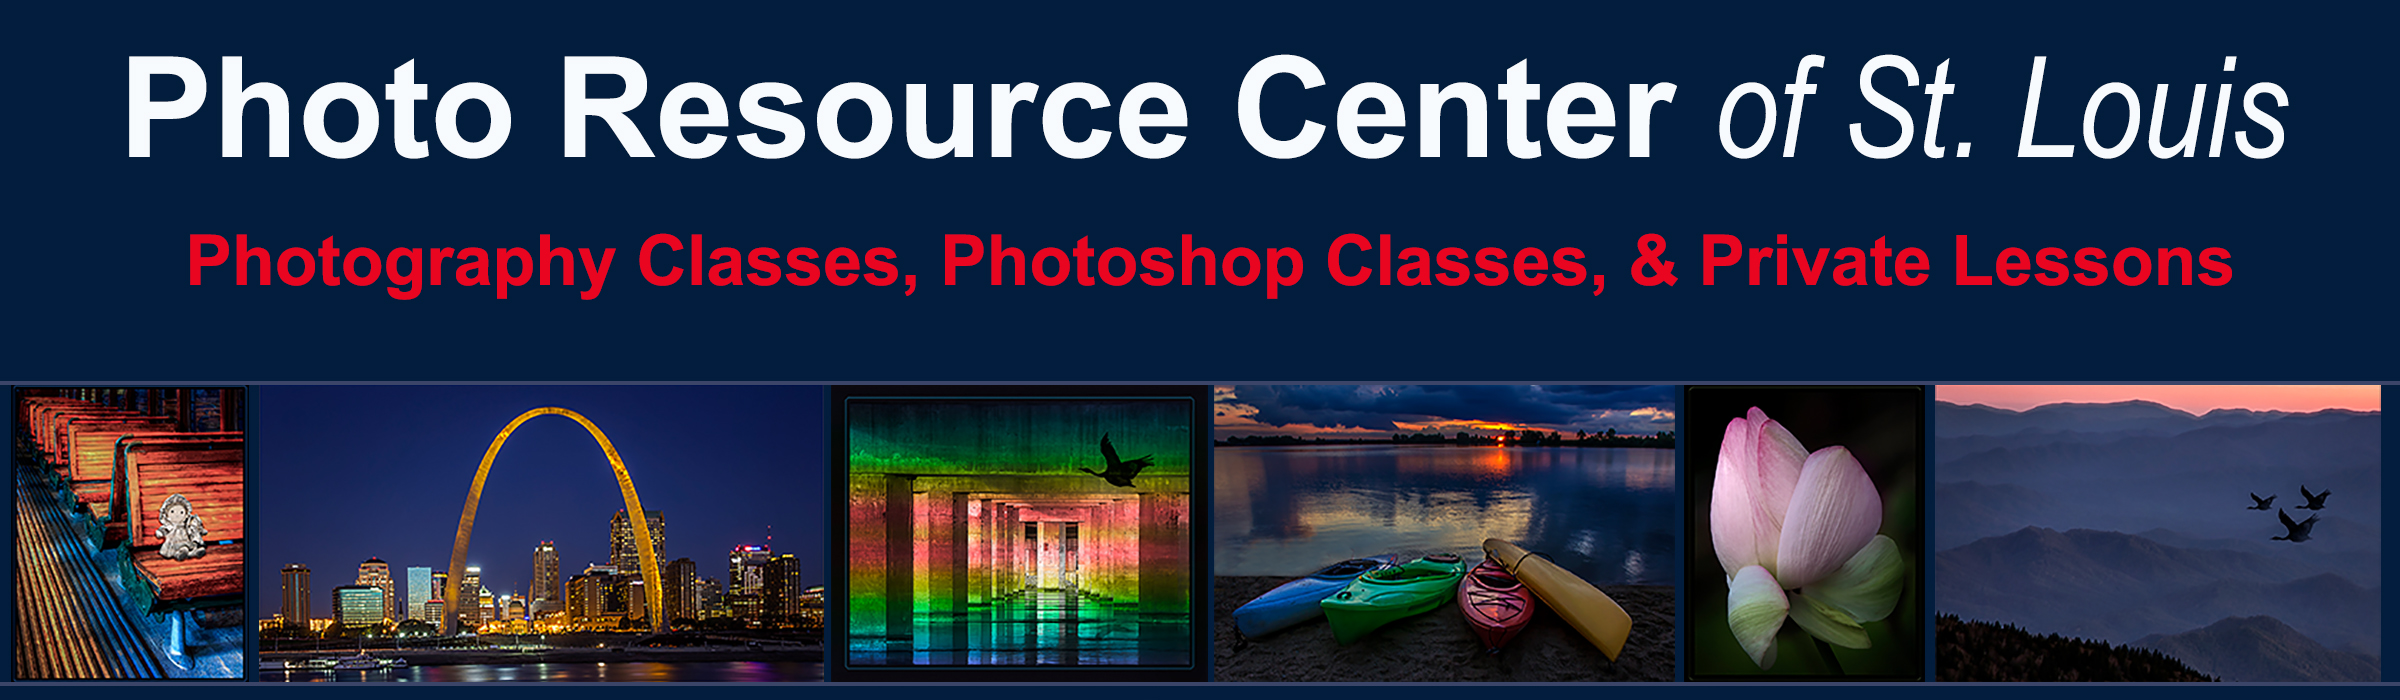 Photoshop Classes Photo Resource Center